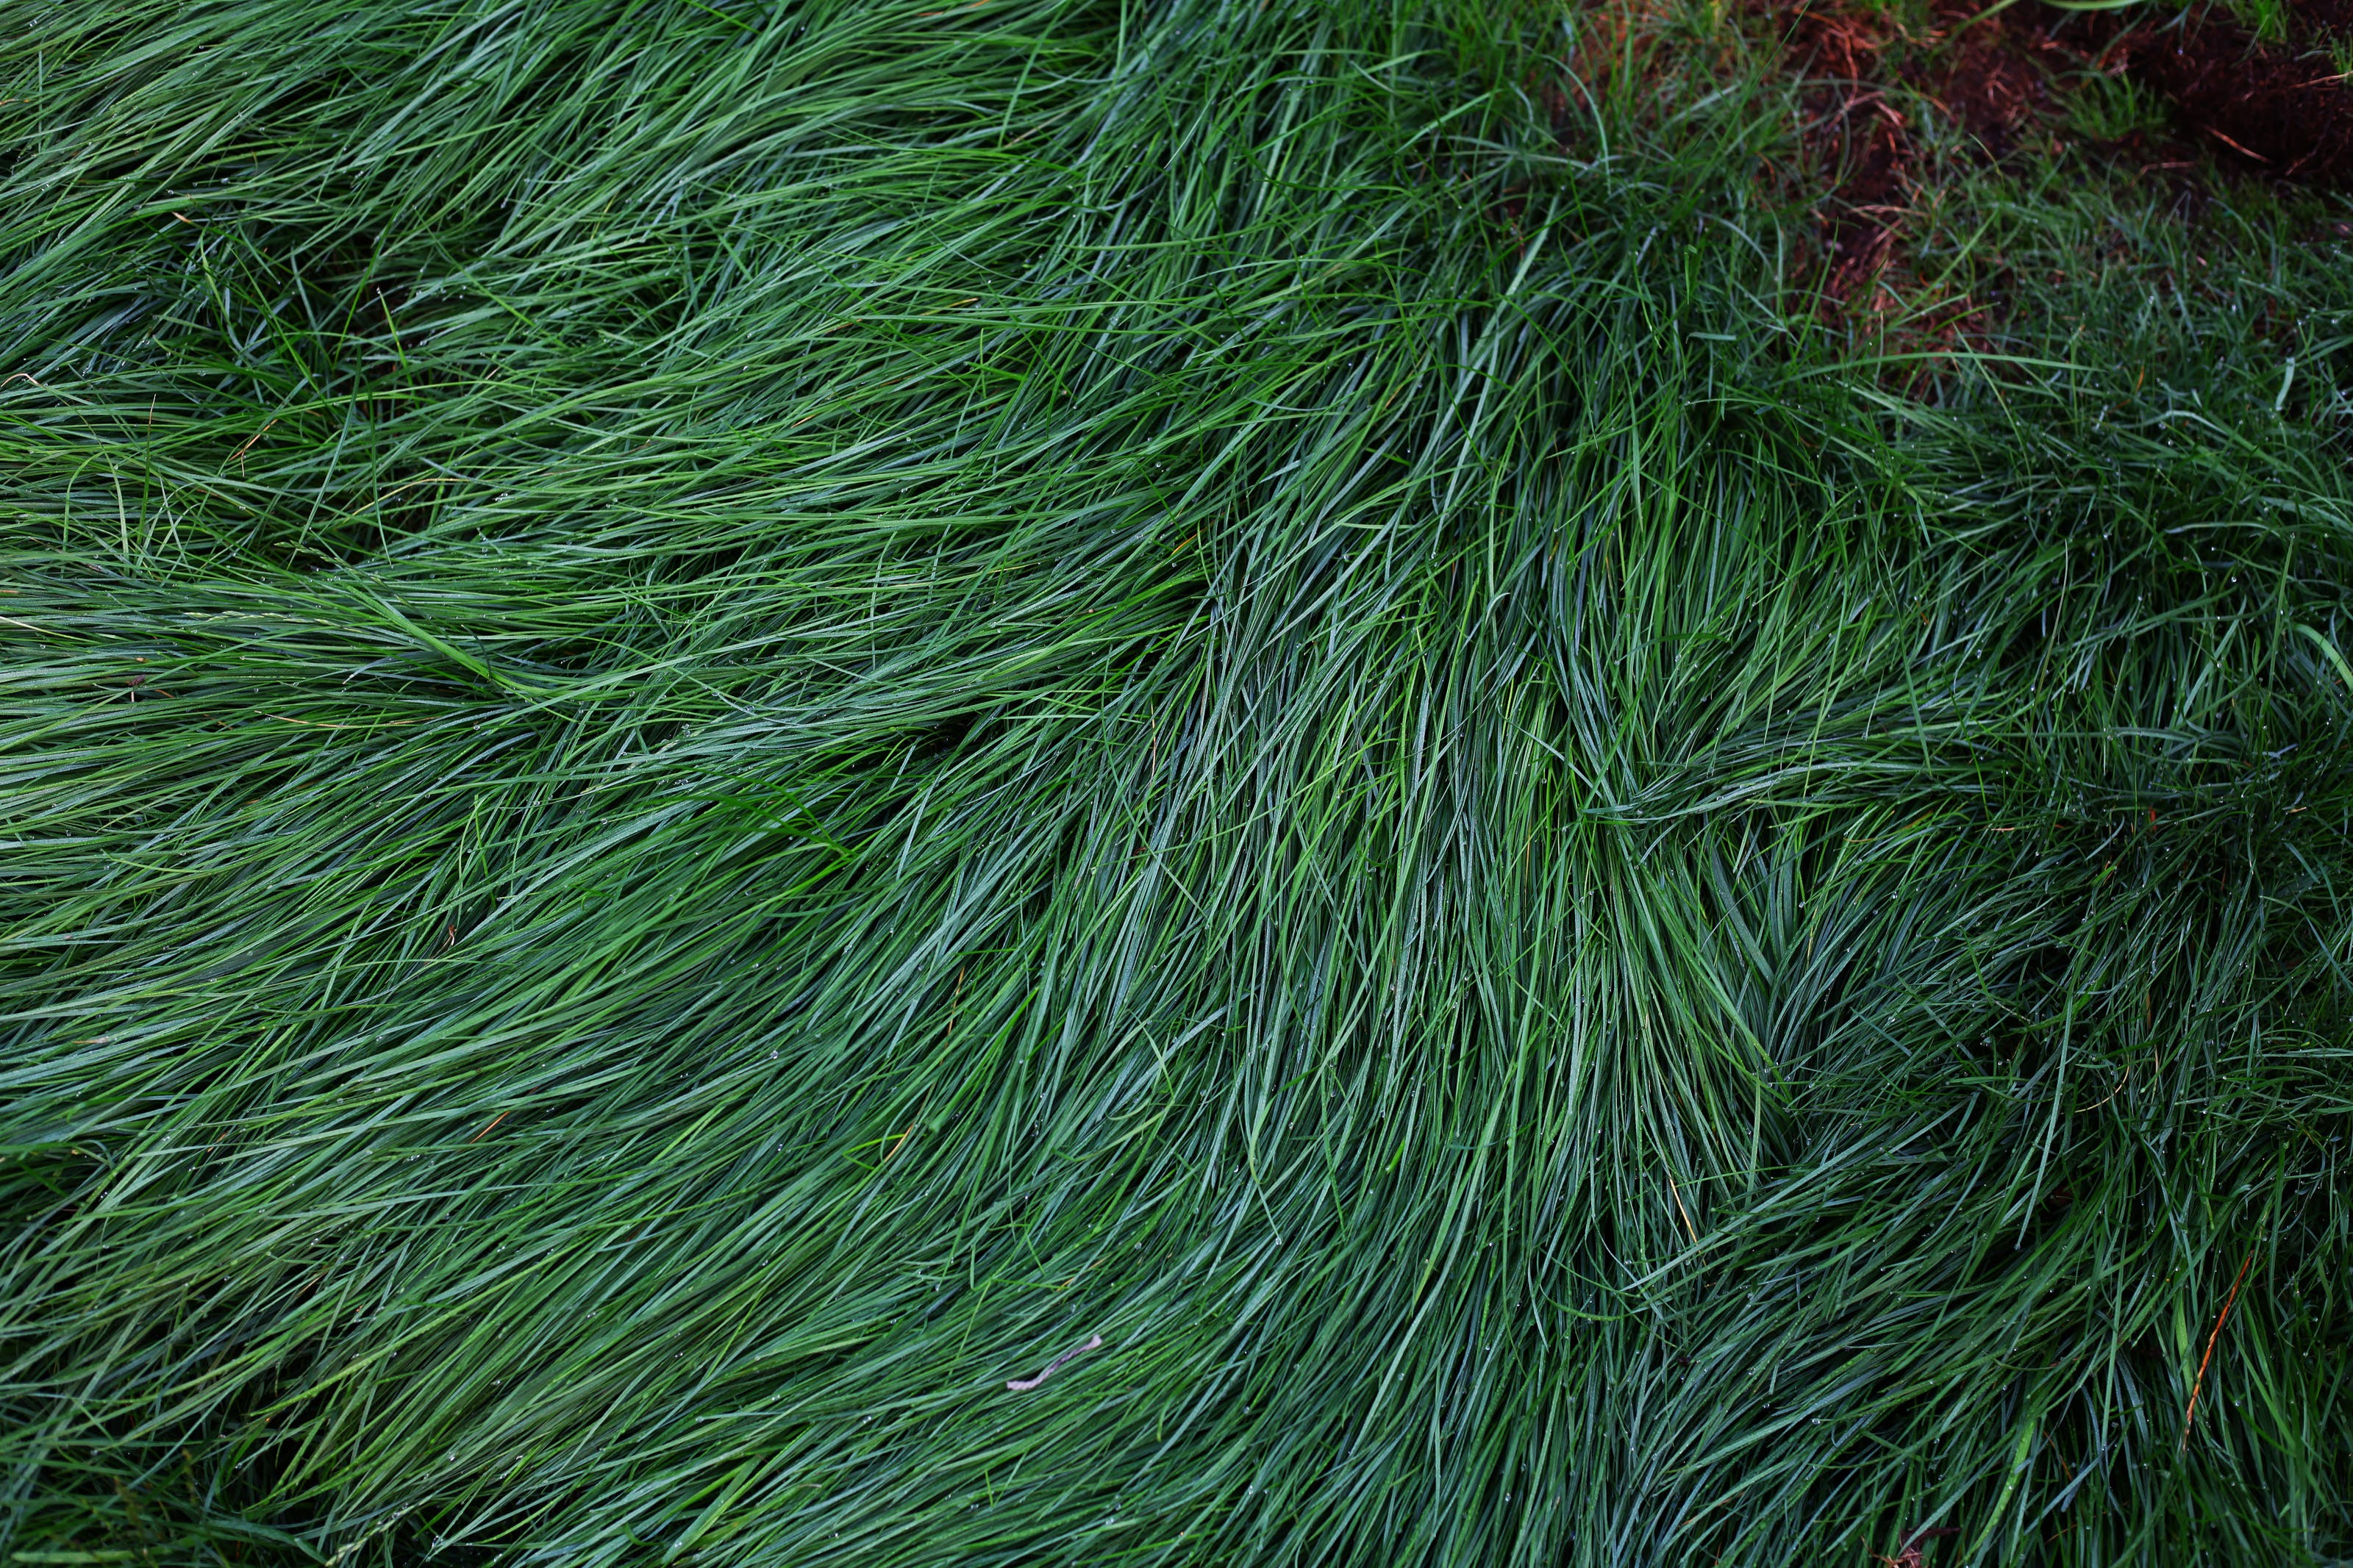 Free stock photo of grass long green